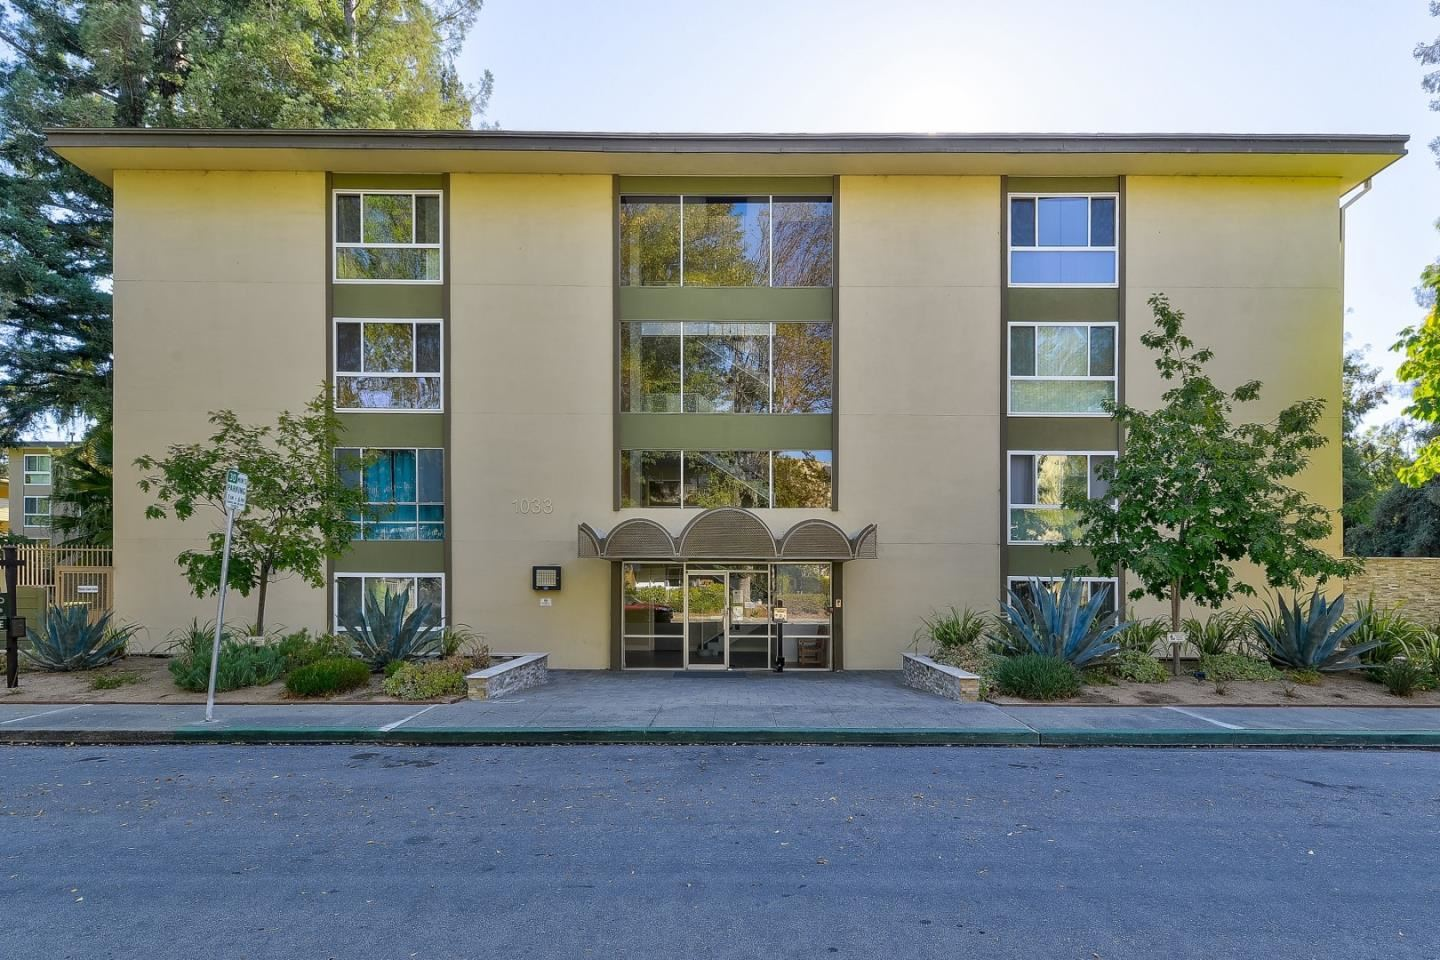 Photo for 1033 Crestview DR 304 #304, MOUNTAIN VIEW, CA 94040 (MLS # ML81821074)